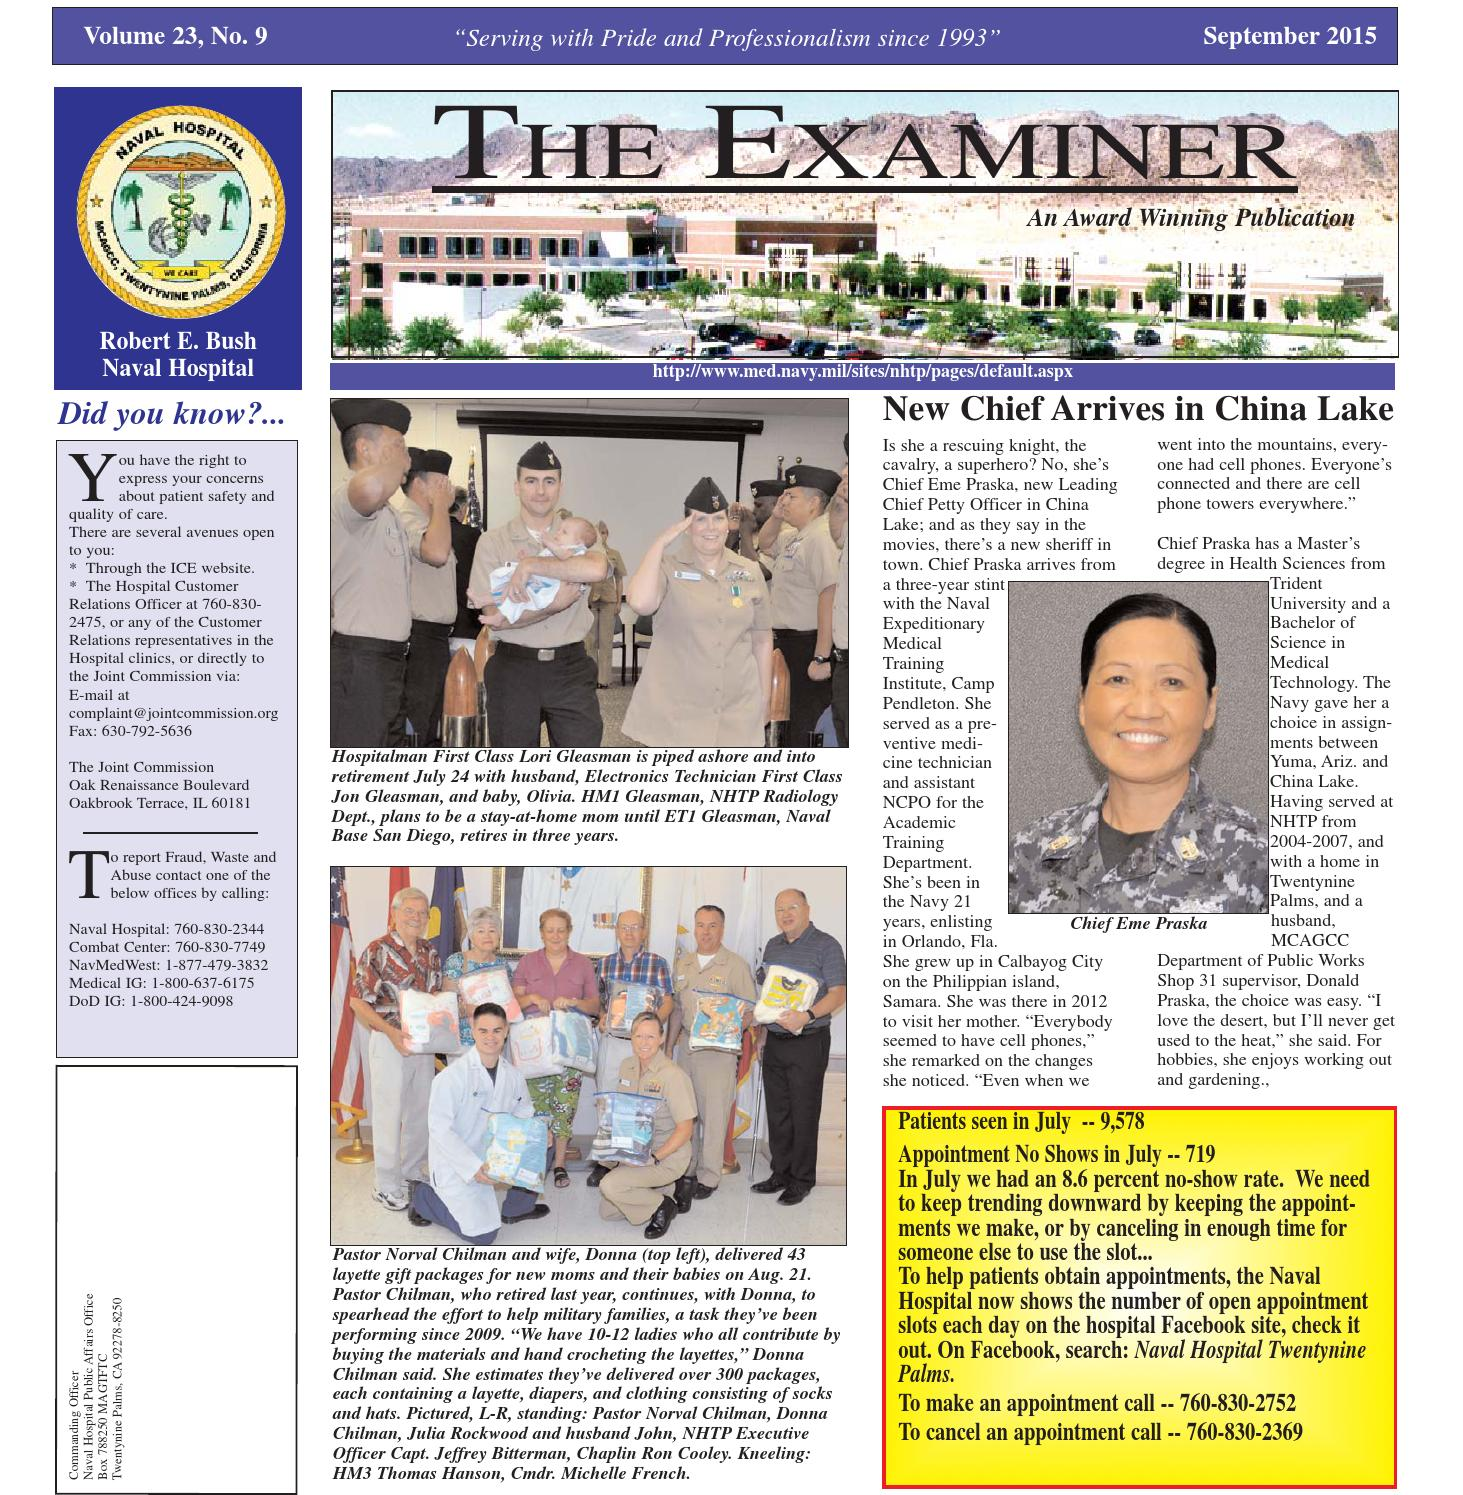 Sept 2015 examiner by david marks issuu for 1 renaissance blvd oakbrook terrace il